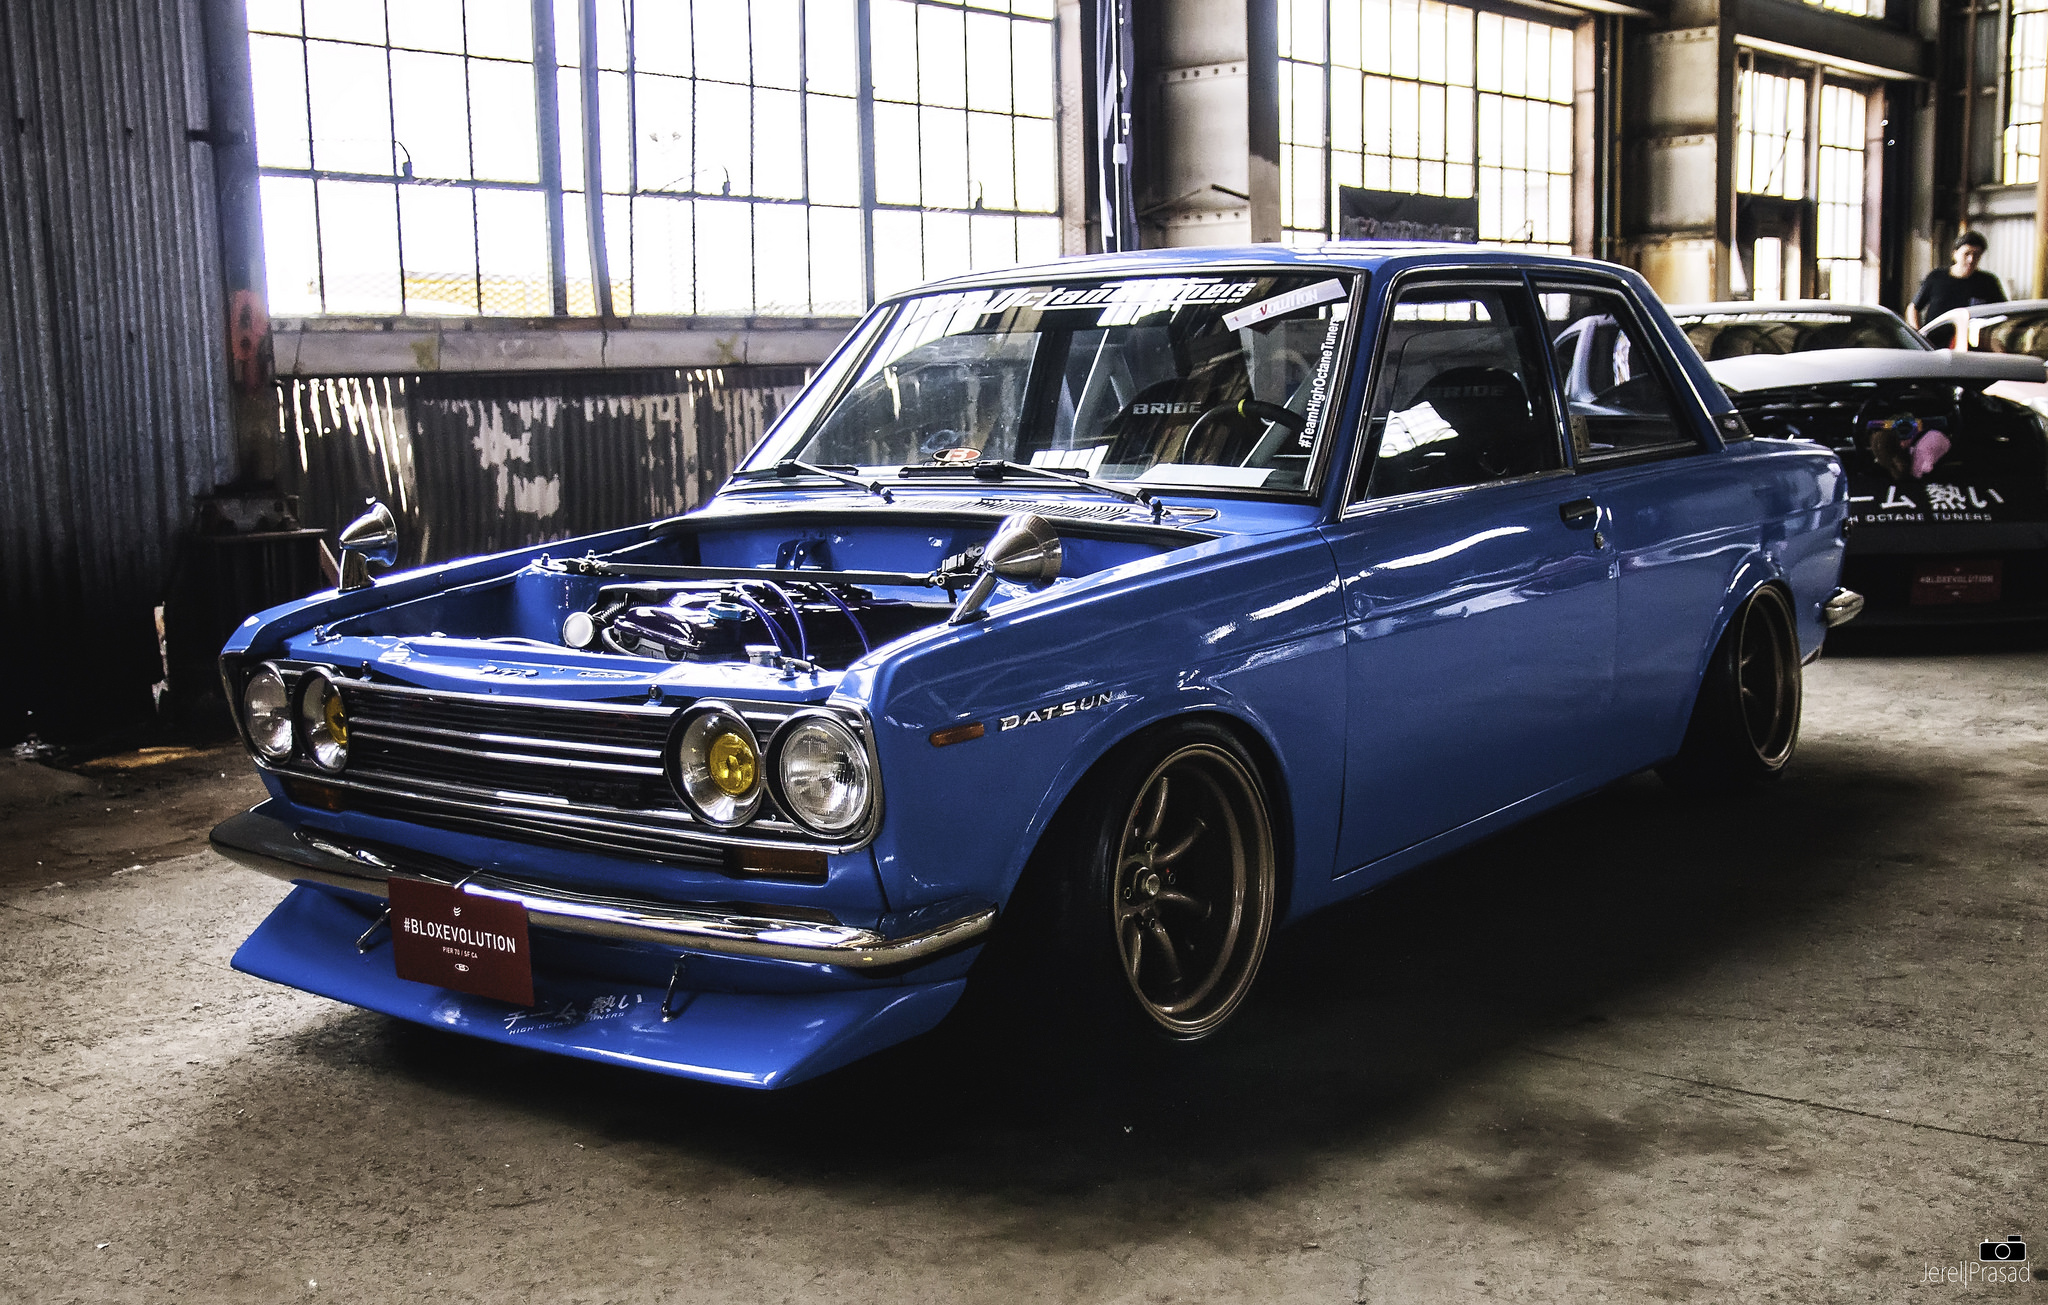 Datsun 510 Looking Good! | StanceNation™ // Form > Function